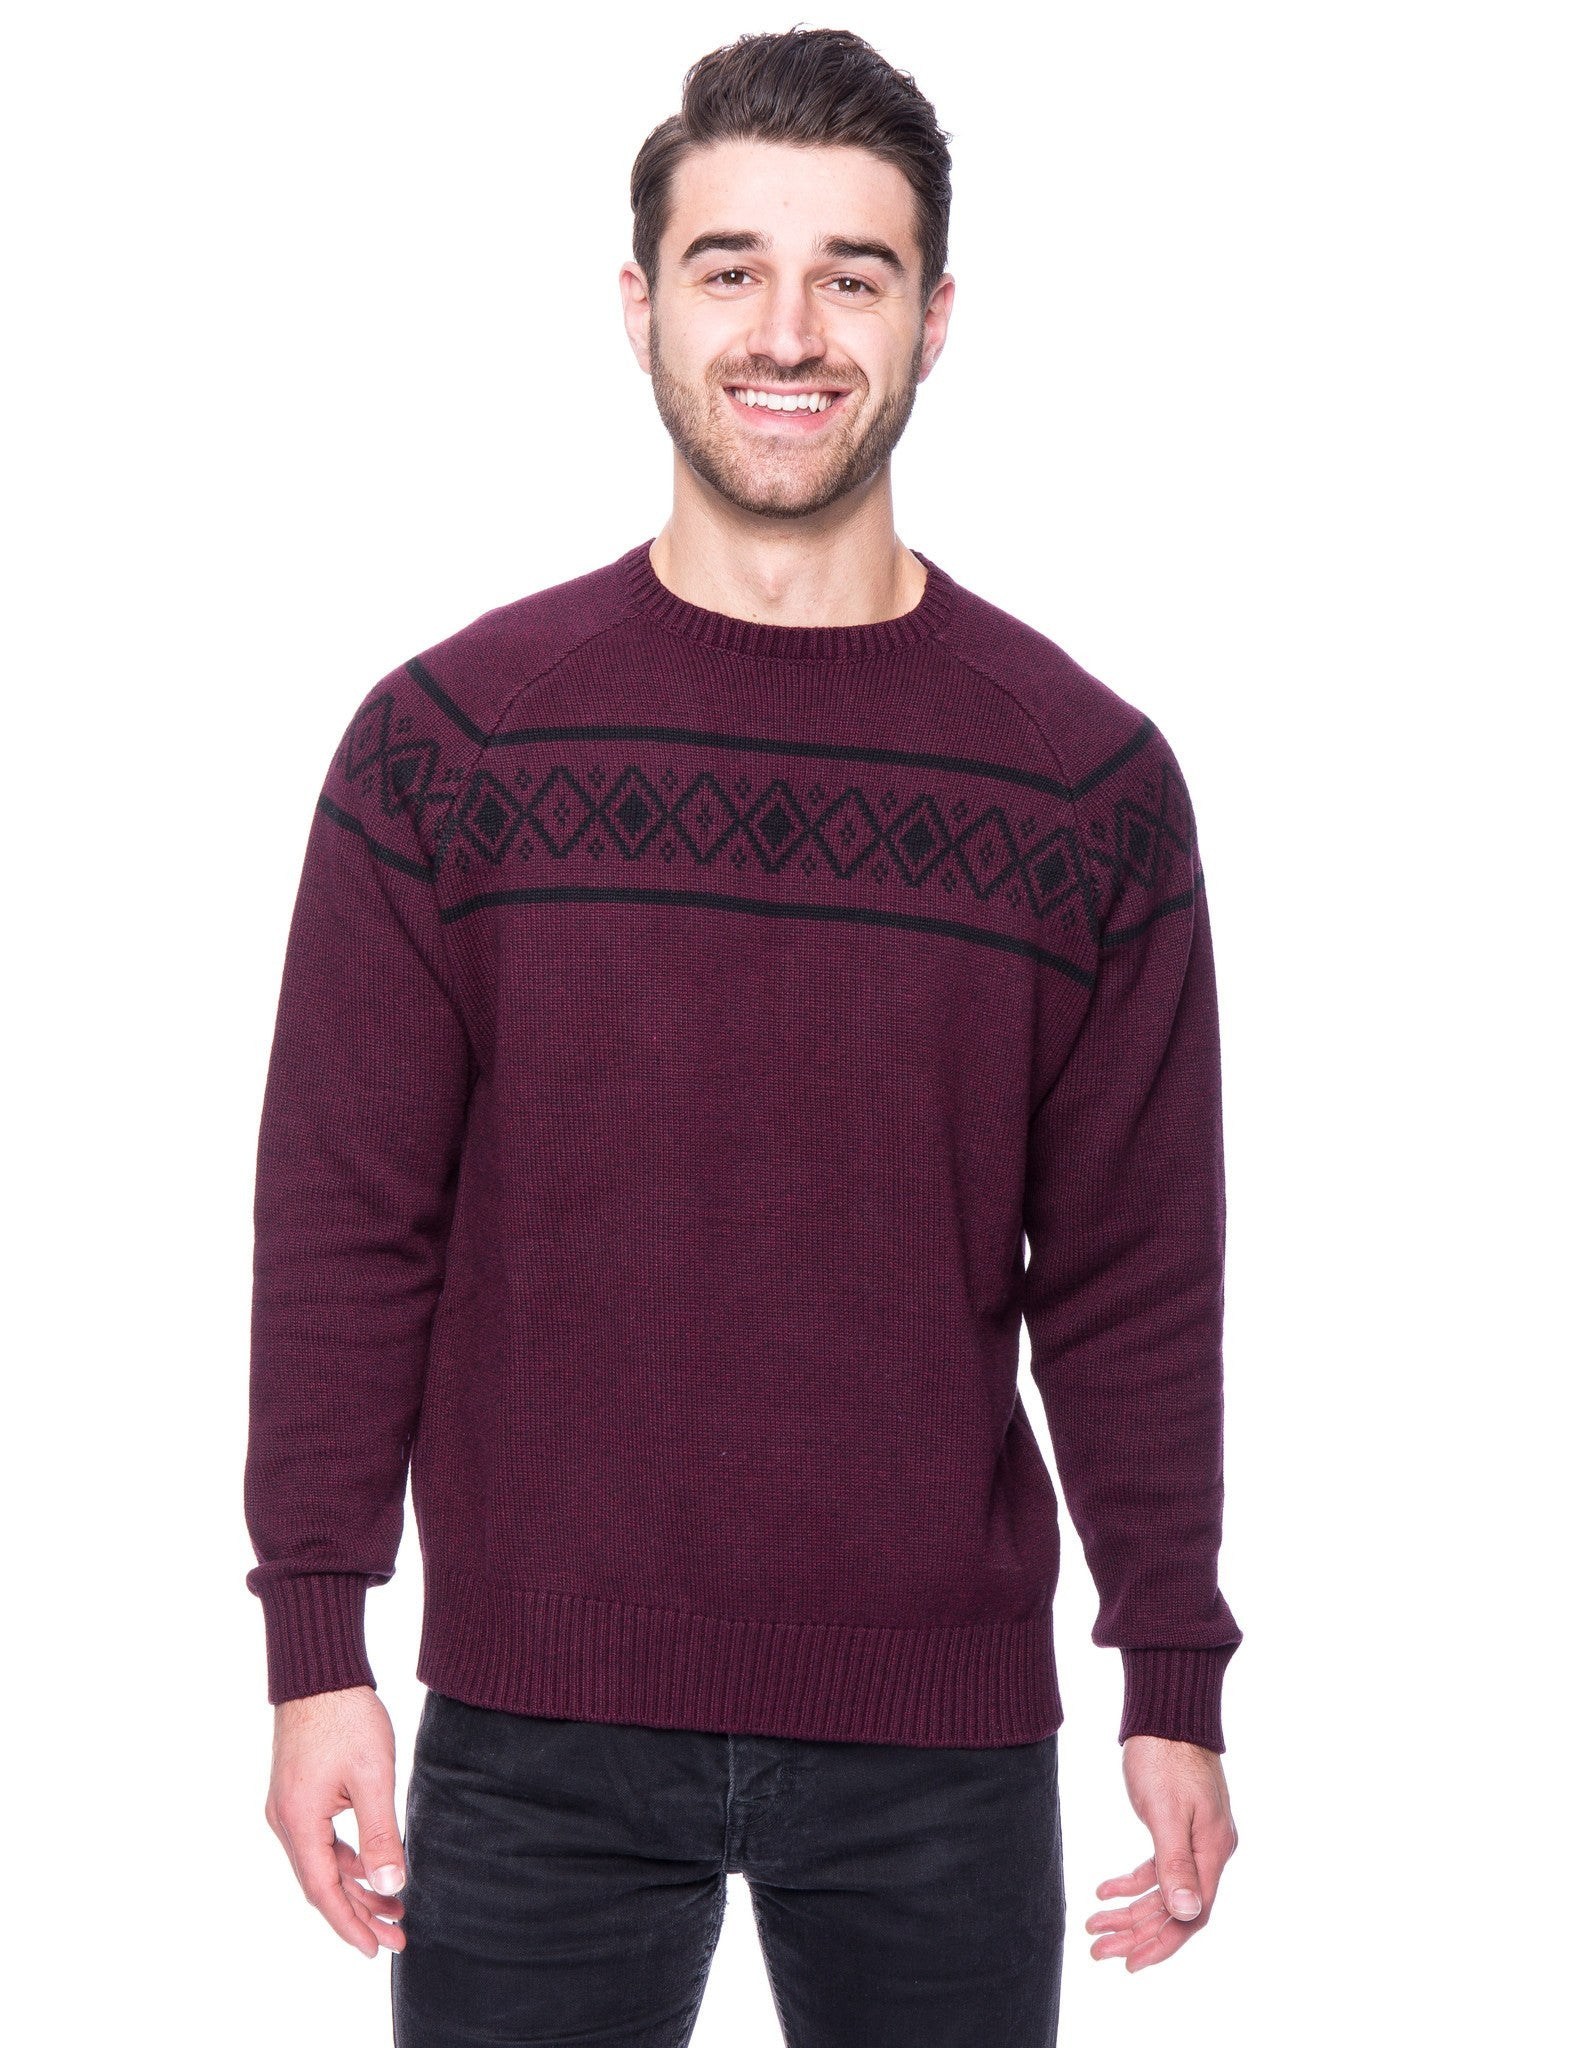 100% Cotton Crew Neck Sweater with Fair Isle Stripe - Marl Burgundy/Black